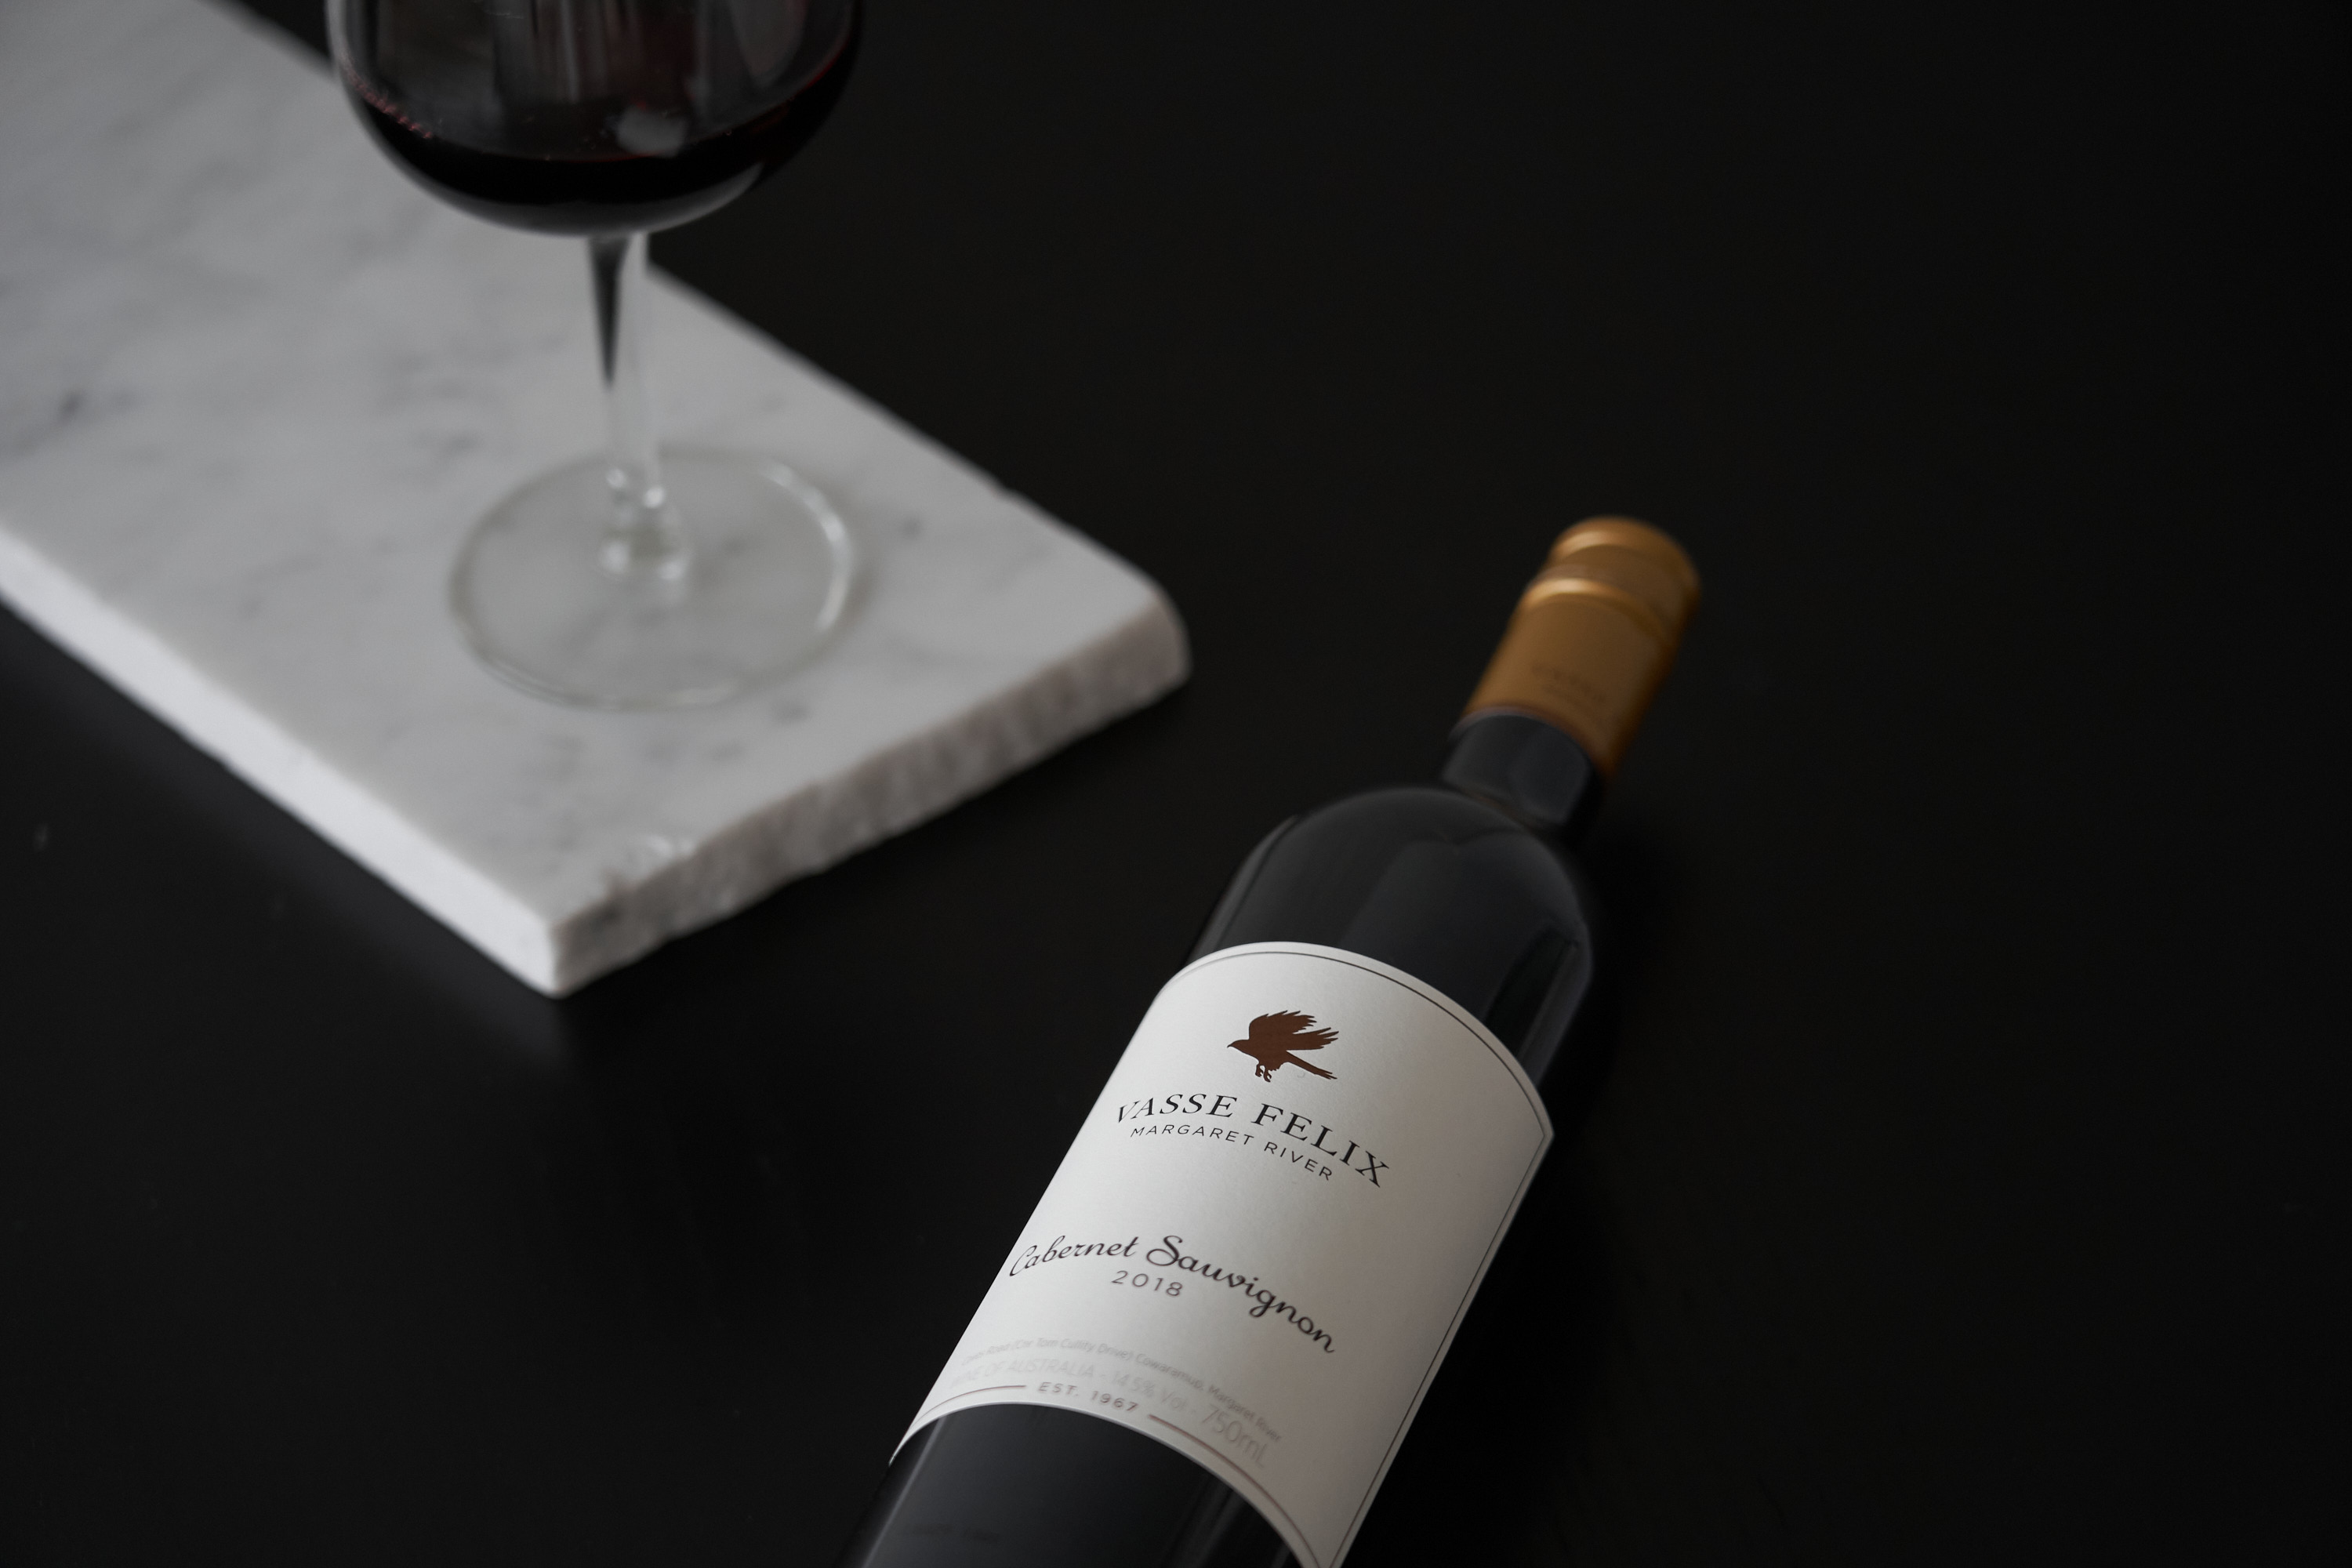 How to Cellar and Decant Cabernet Sauvignon - Vasse Felix Interview | Softer Volumes